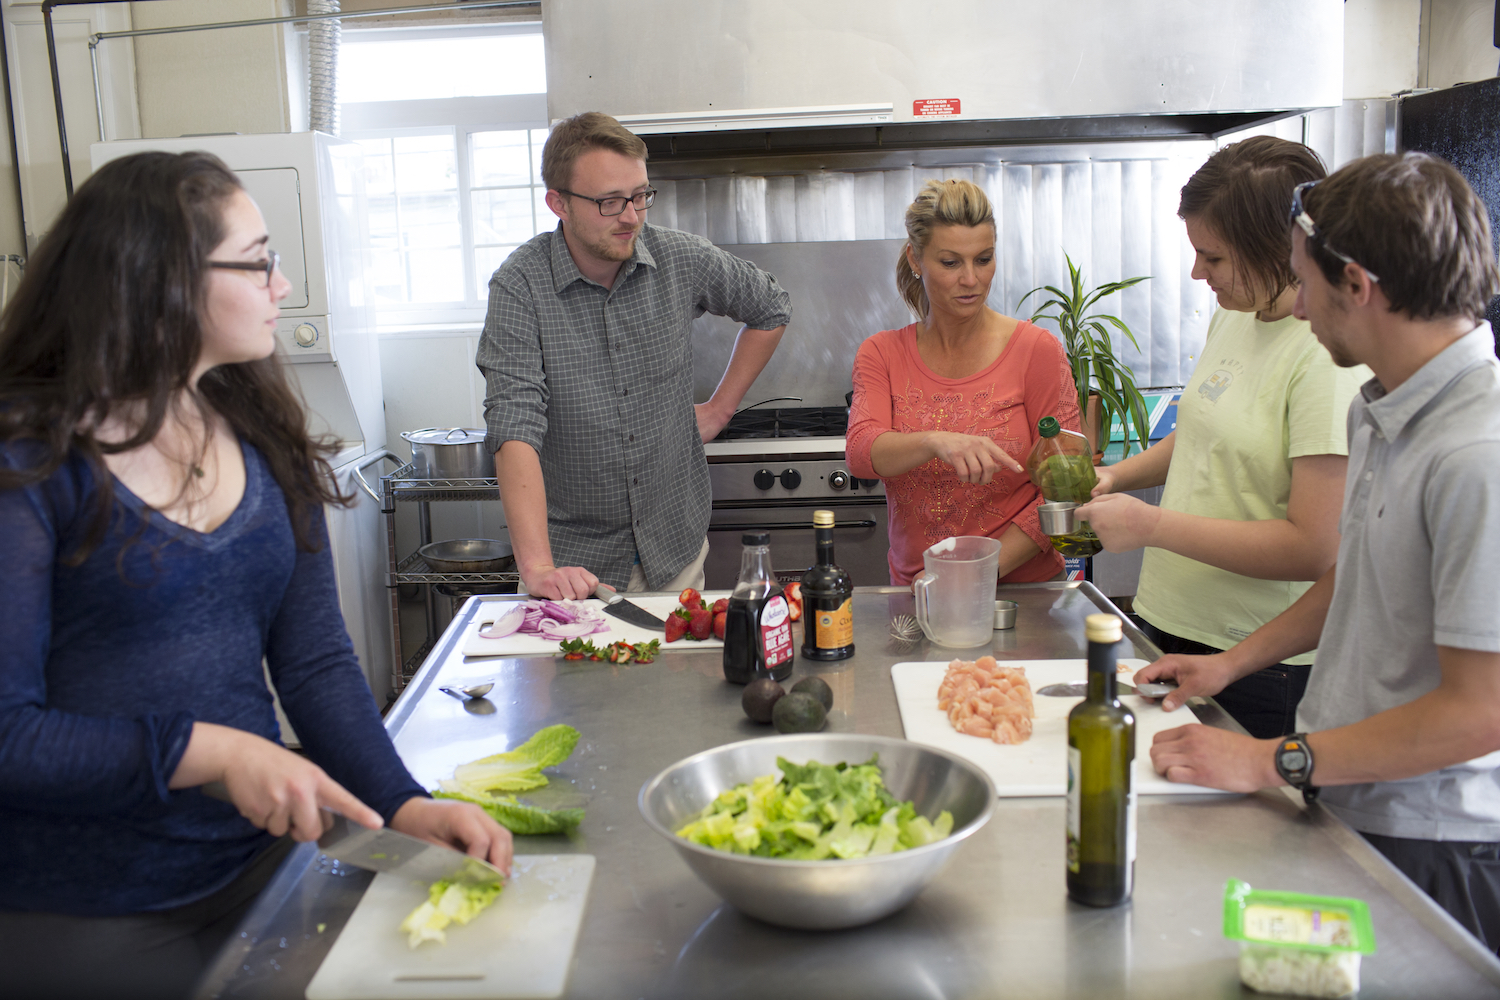 Group Learning How to Cook Together